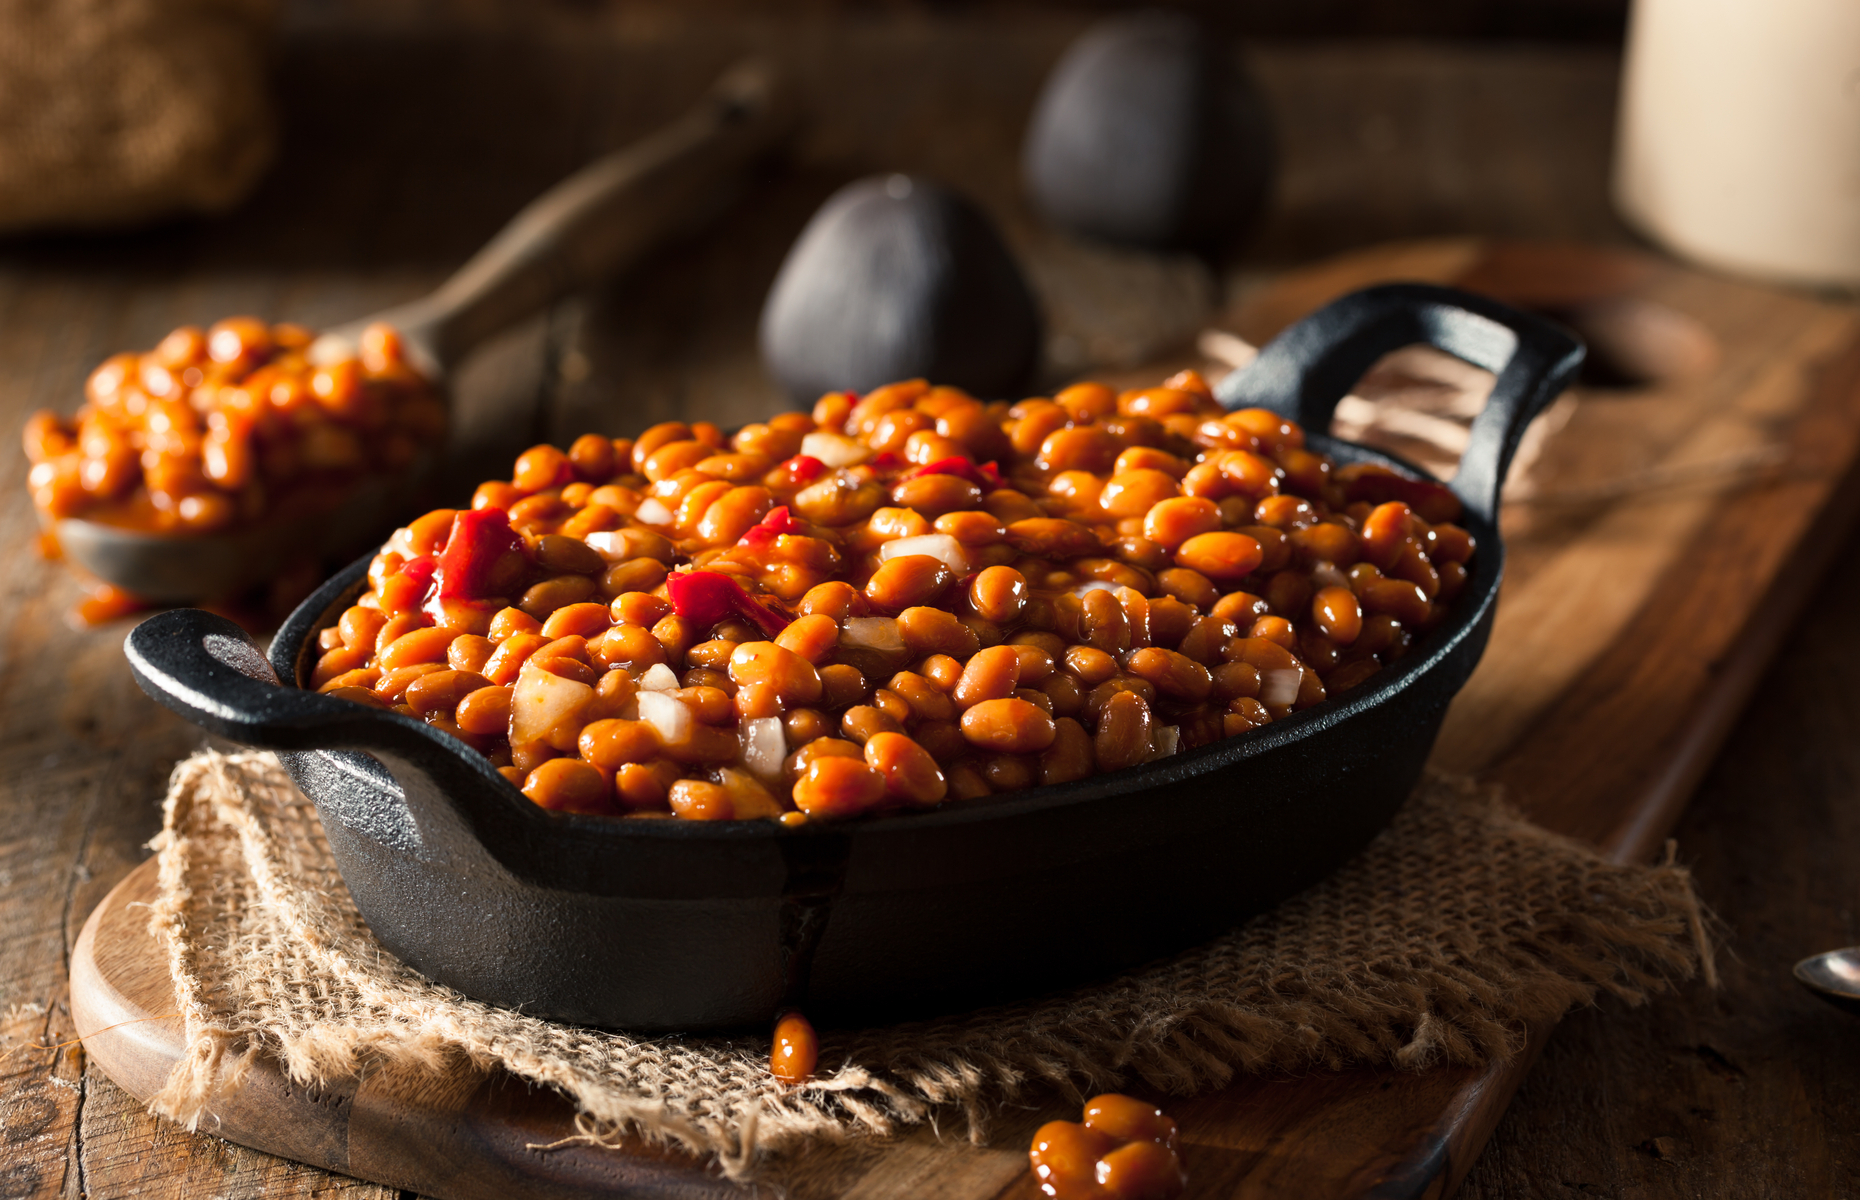 How To Make Your Own Baked Beans